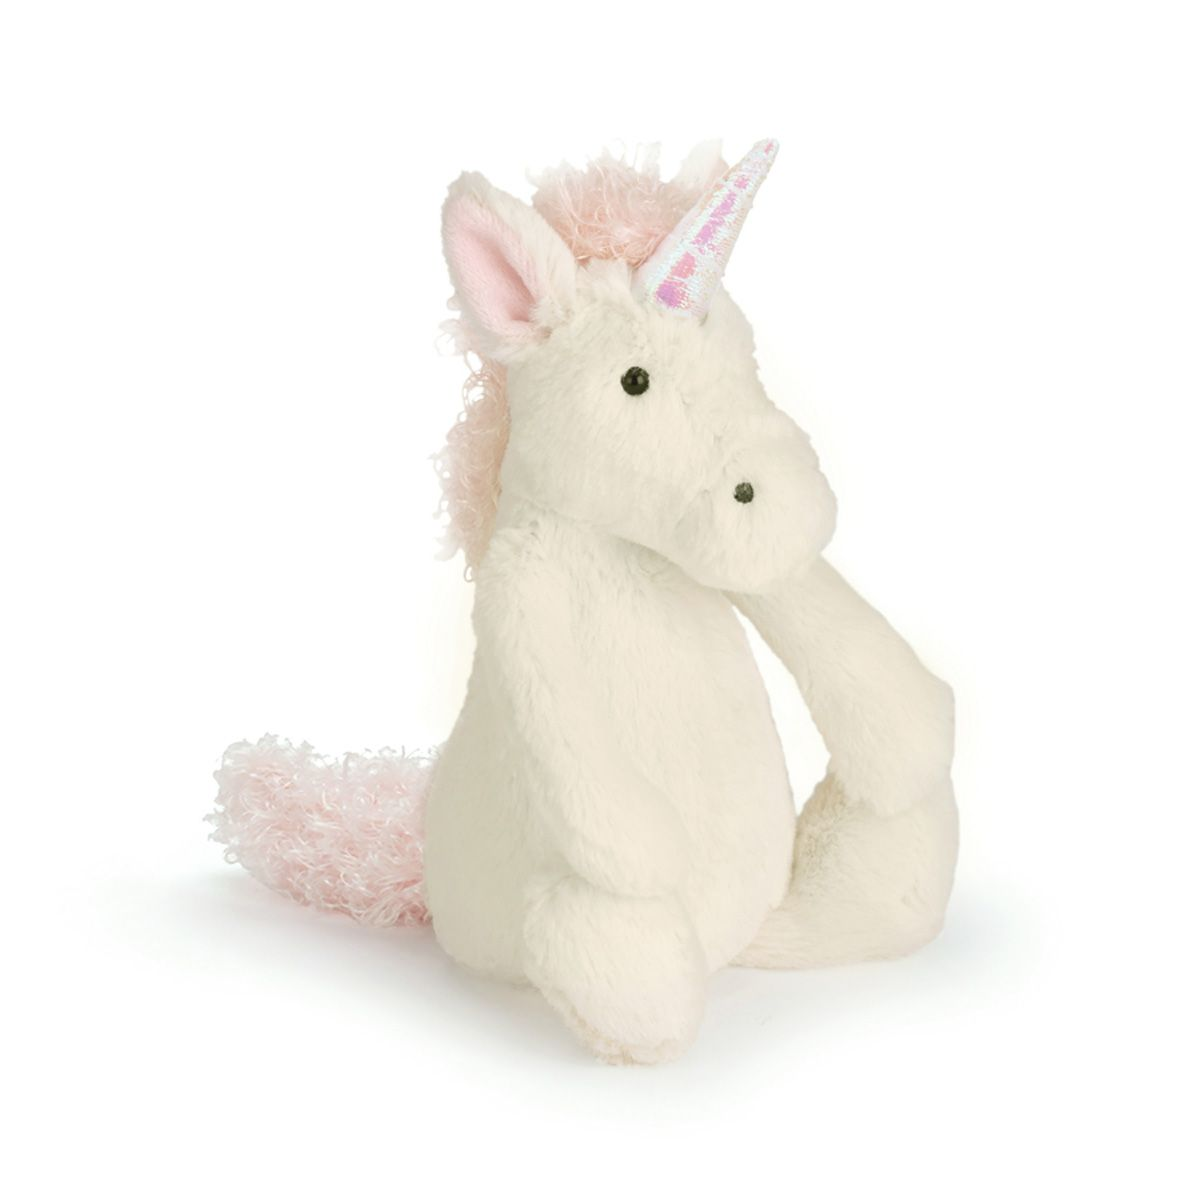 kuscheltier einhorn 39 bashful unicorn 39 klein von jellycat kaufen. Black Bedroom Furniture Sets. Home Design Ideas